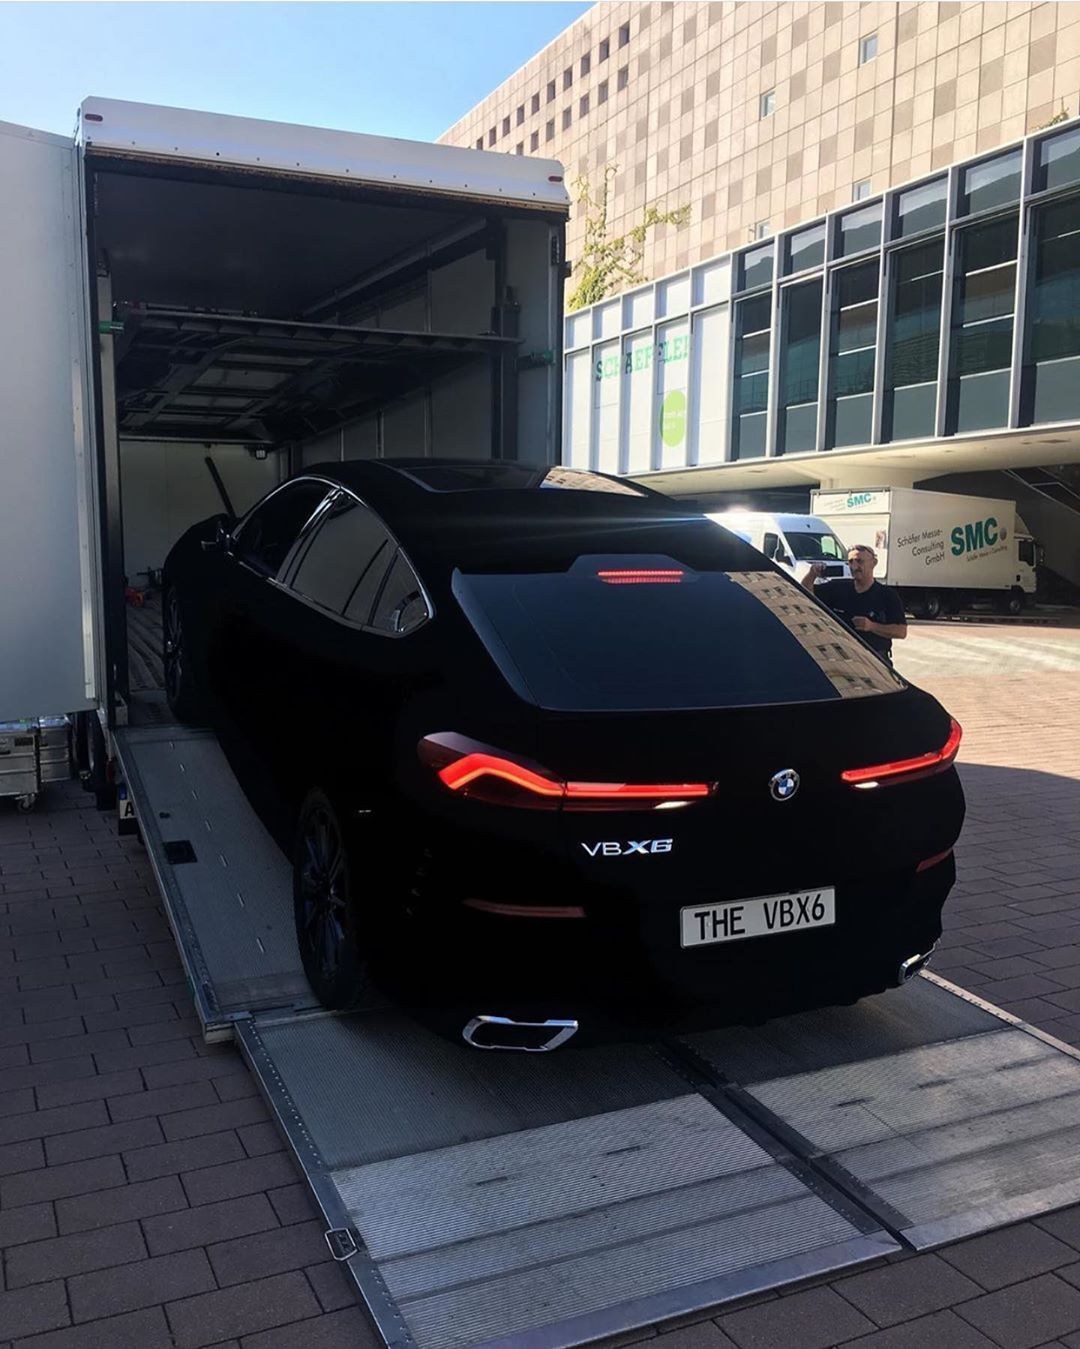 The New Bmw X6 Coated In Vantablack The World S Darkest Material It Absorbs 99 96 Of Visible Light Bmw X6 Bugatti Cars Luxury Cars Range Rover